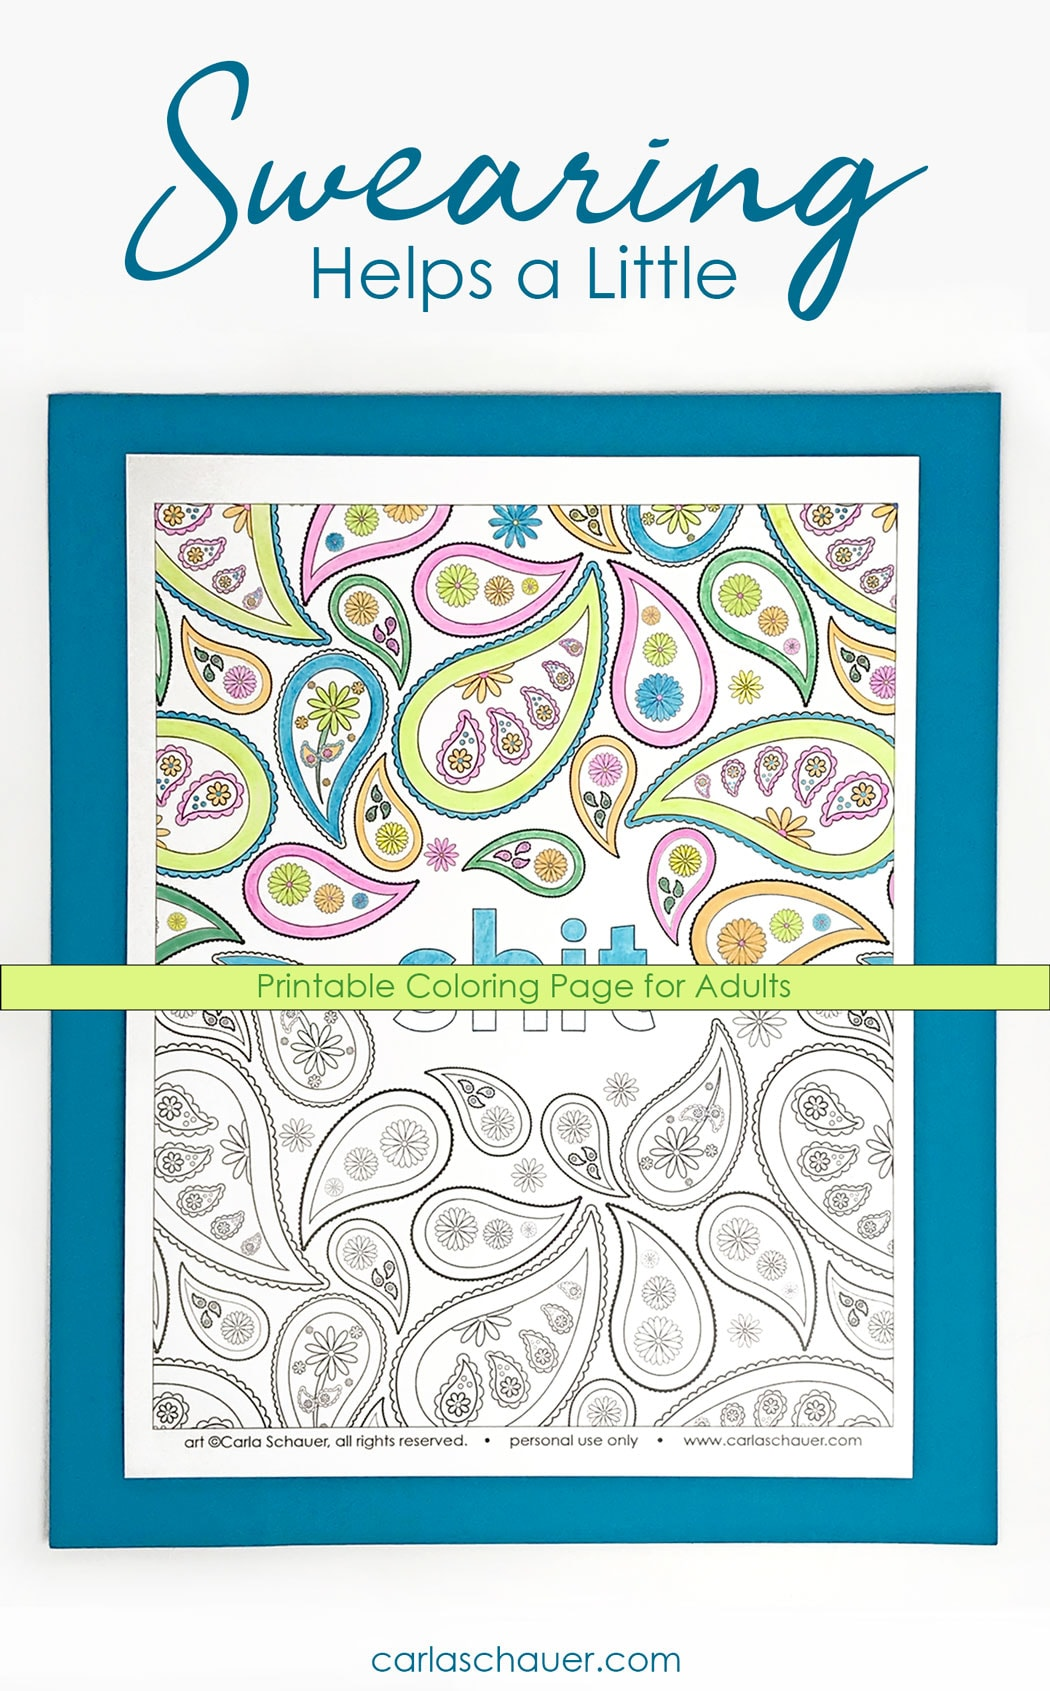 Sweary Cuss Word Coloring Page For Adults Carla Schauer Designs